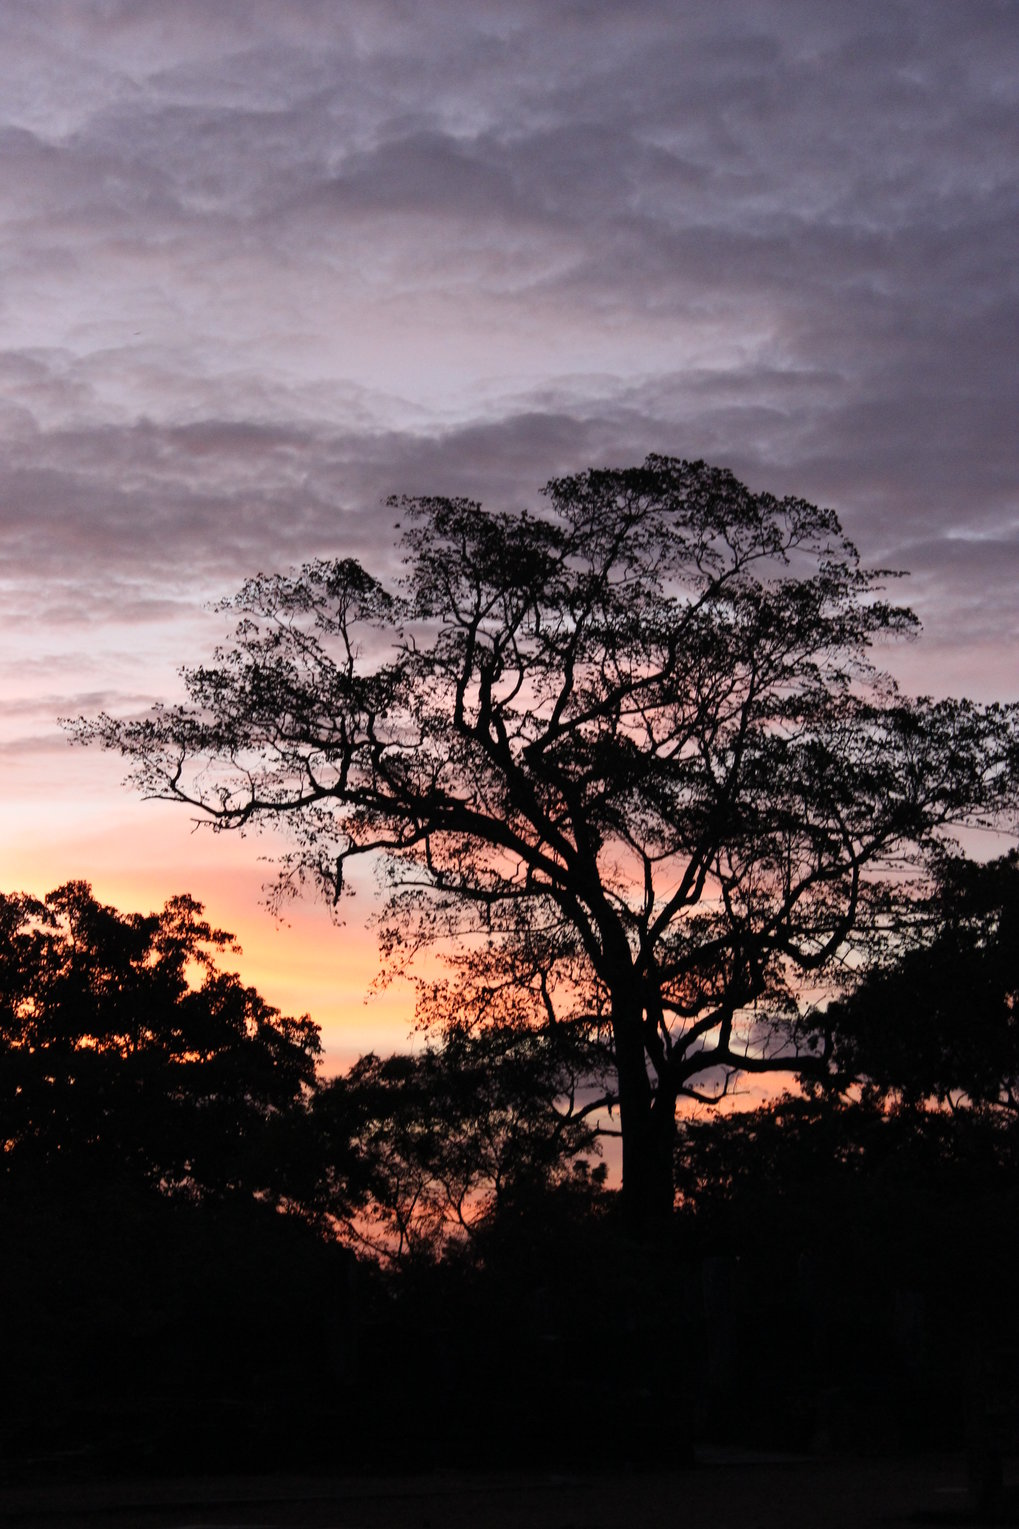 View from the ancient city of Polonnaurwa into Sri Lankan Dry Zone tropical forest at dusk.